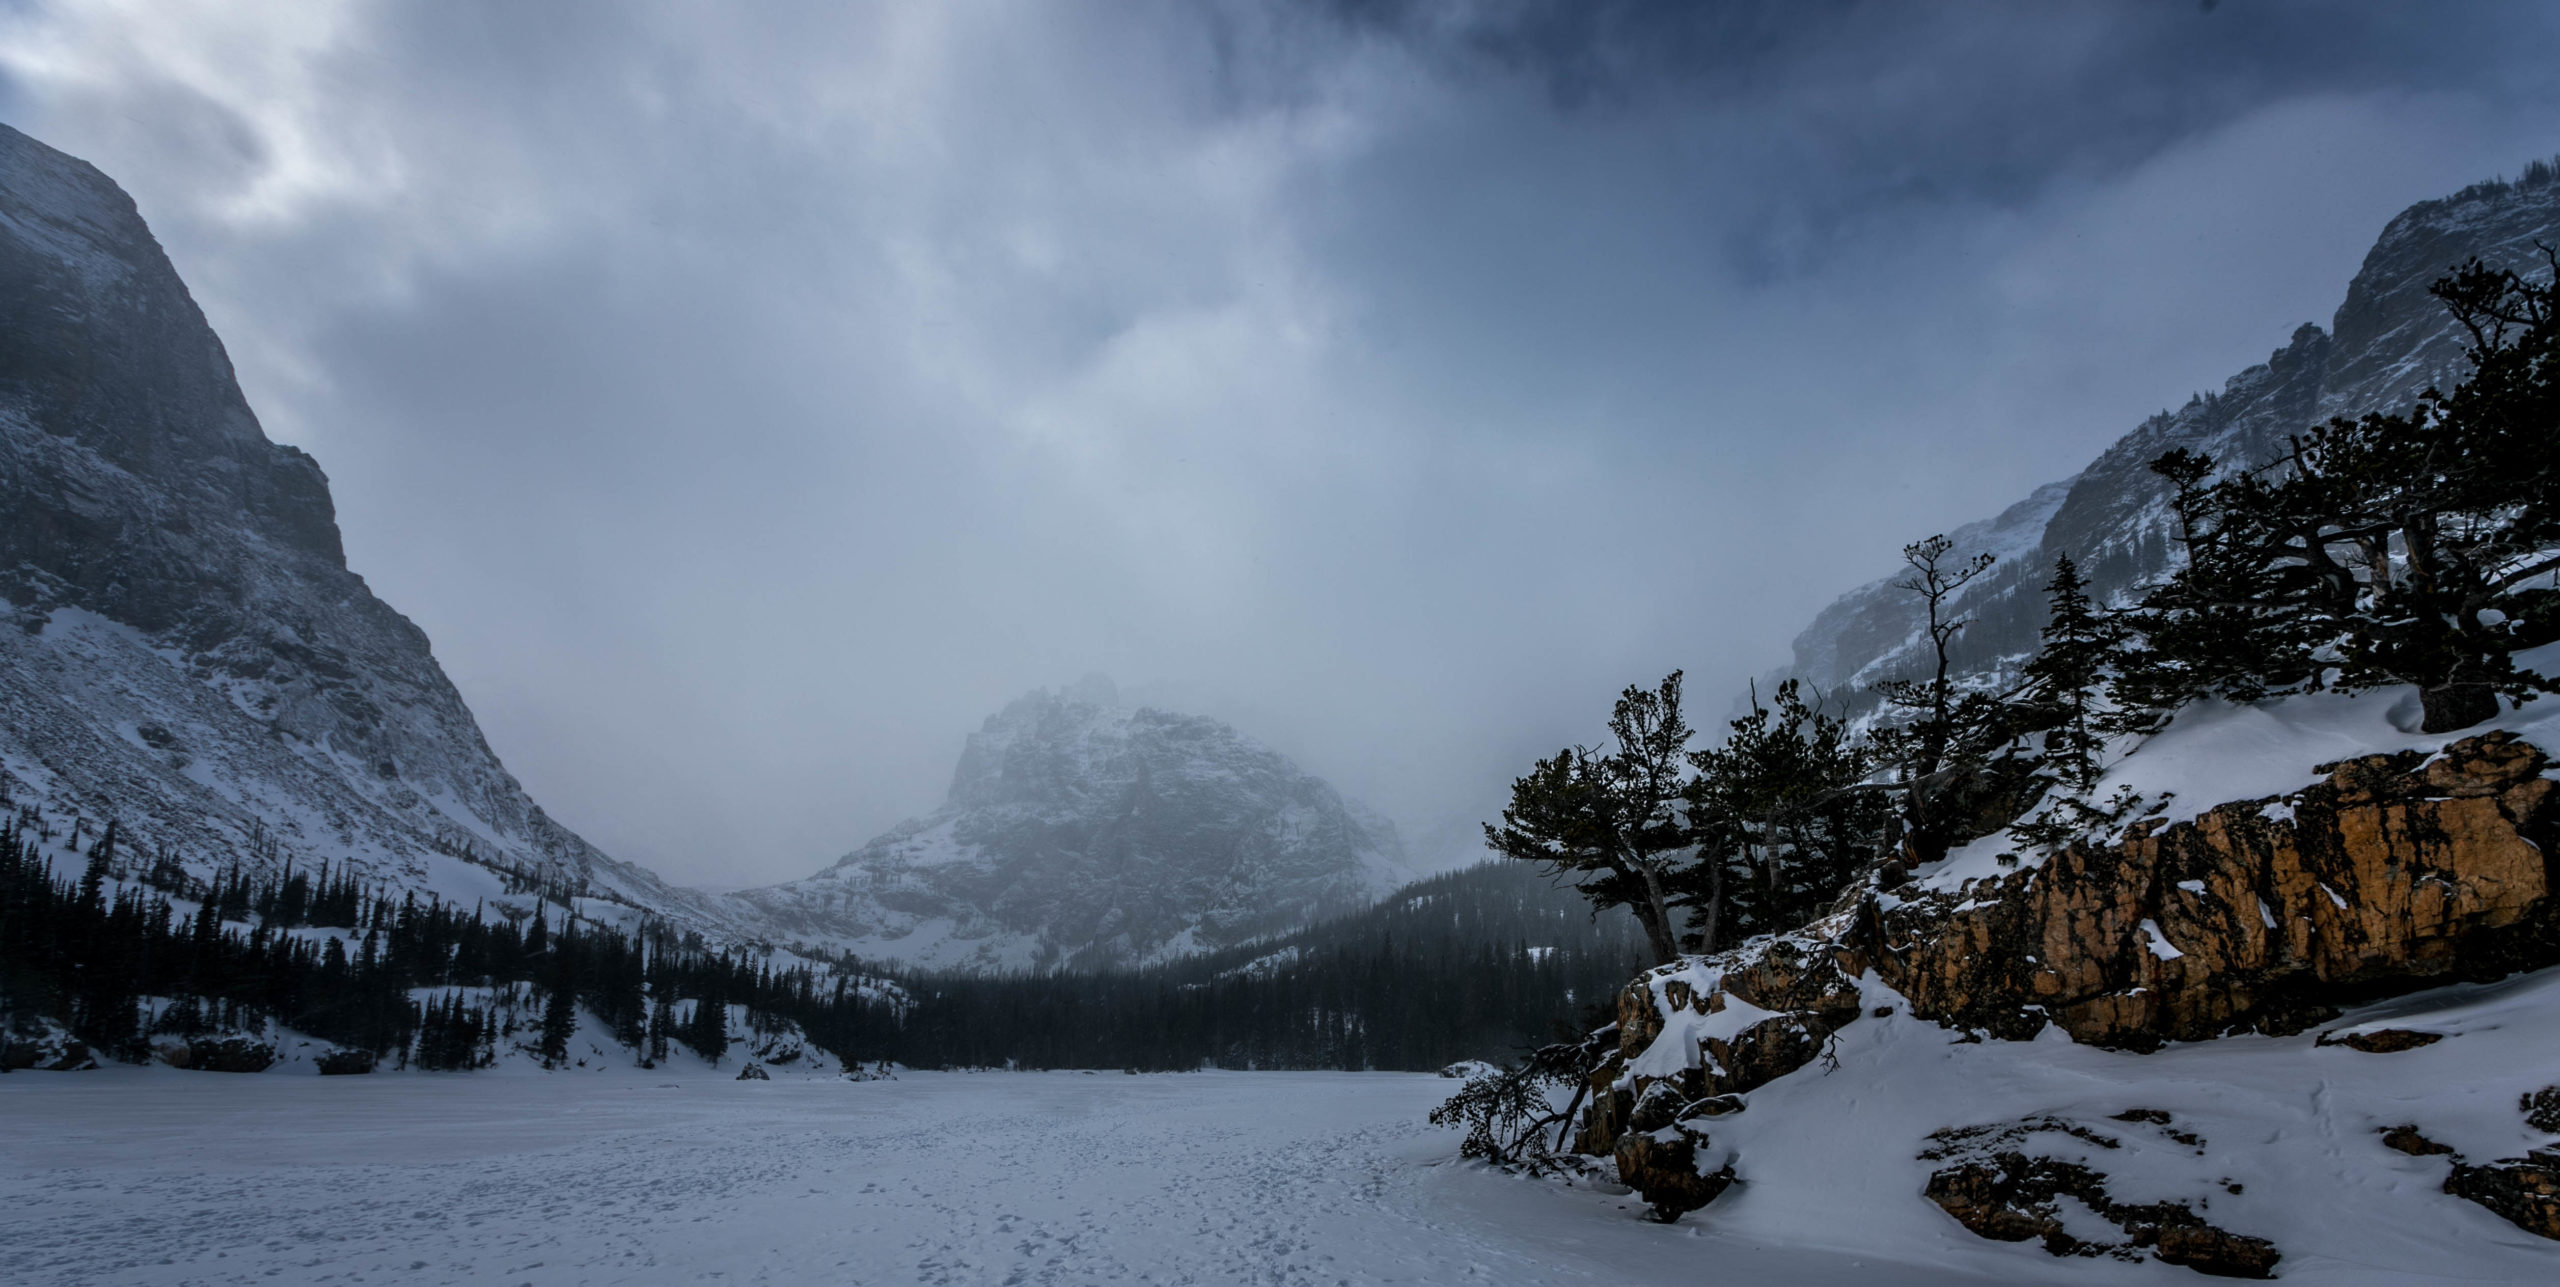 loch vale winter rocky mountain national park covid travel